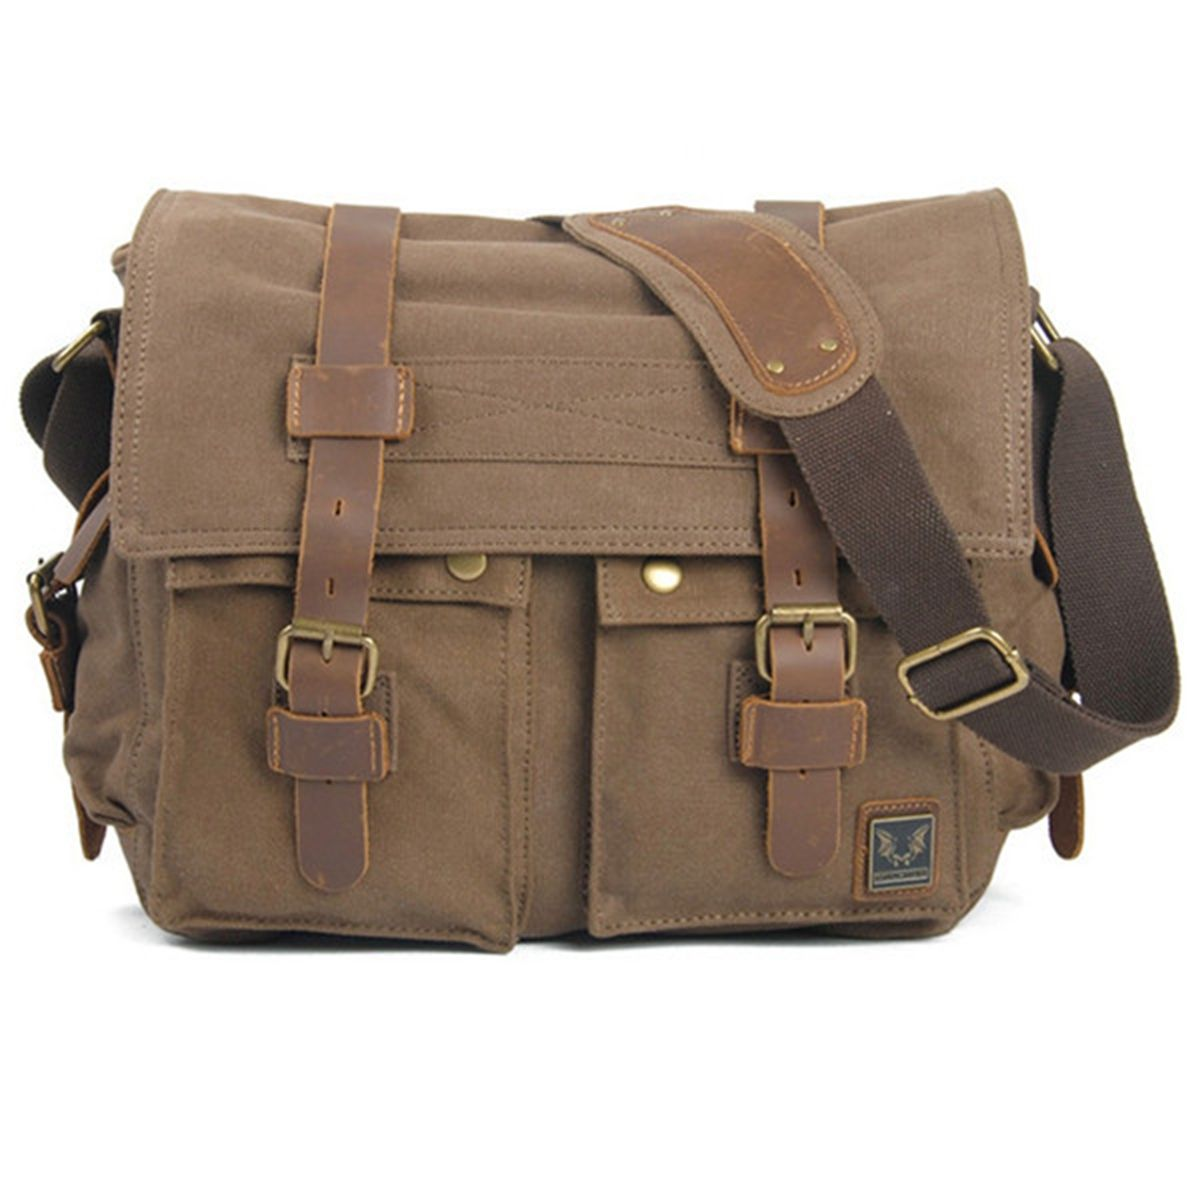 2fe453e80f SAC-BANDOULIERE-EPAULE-SACOCHE-TOILE-CUIR-DOS-HOMME -CARTABLE-CAMPUS-CAMPING-MODE